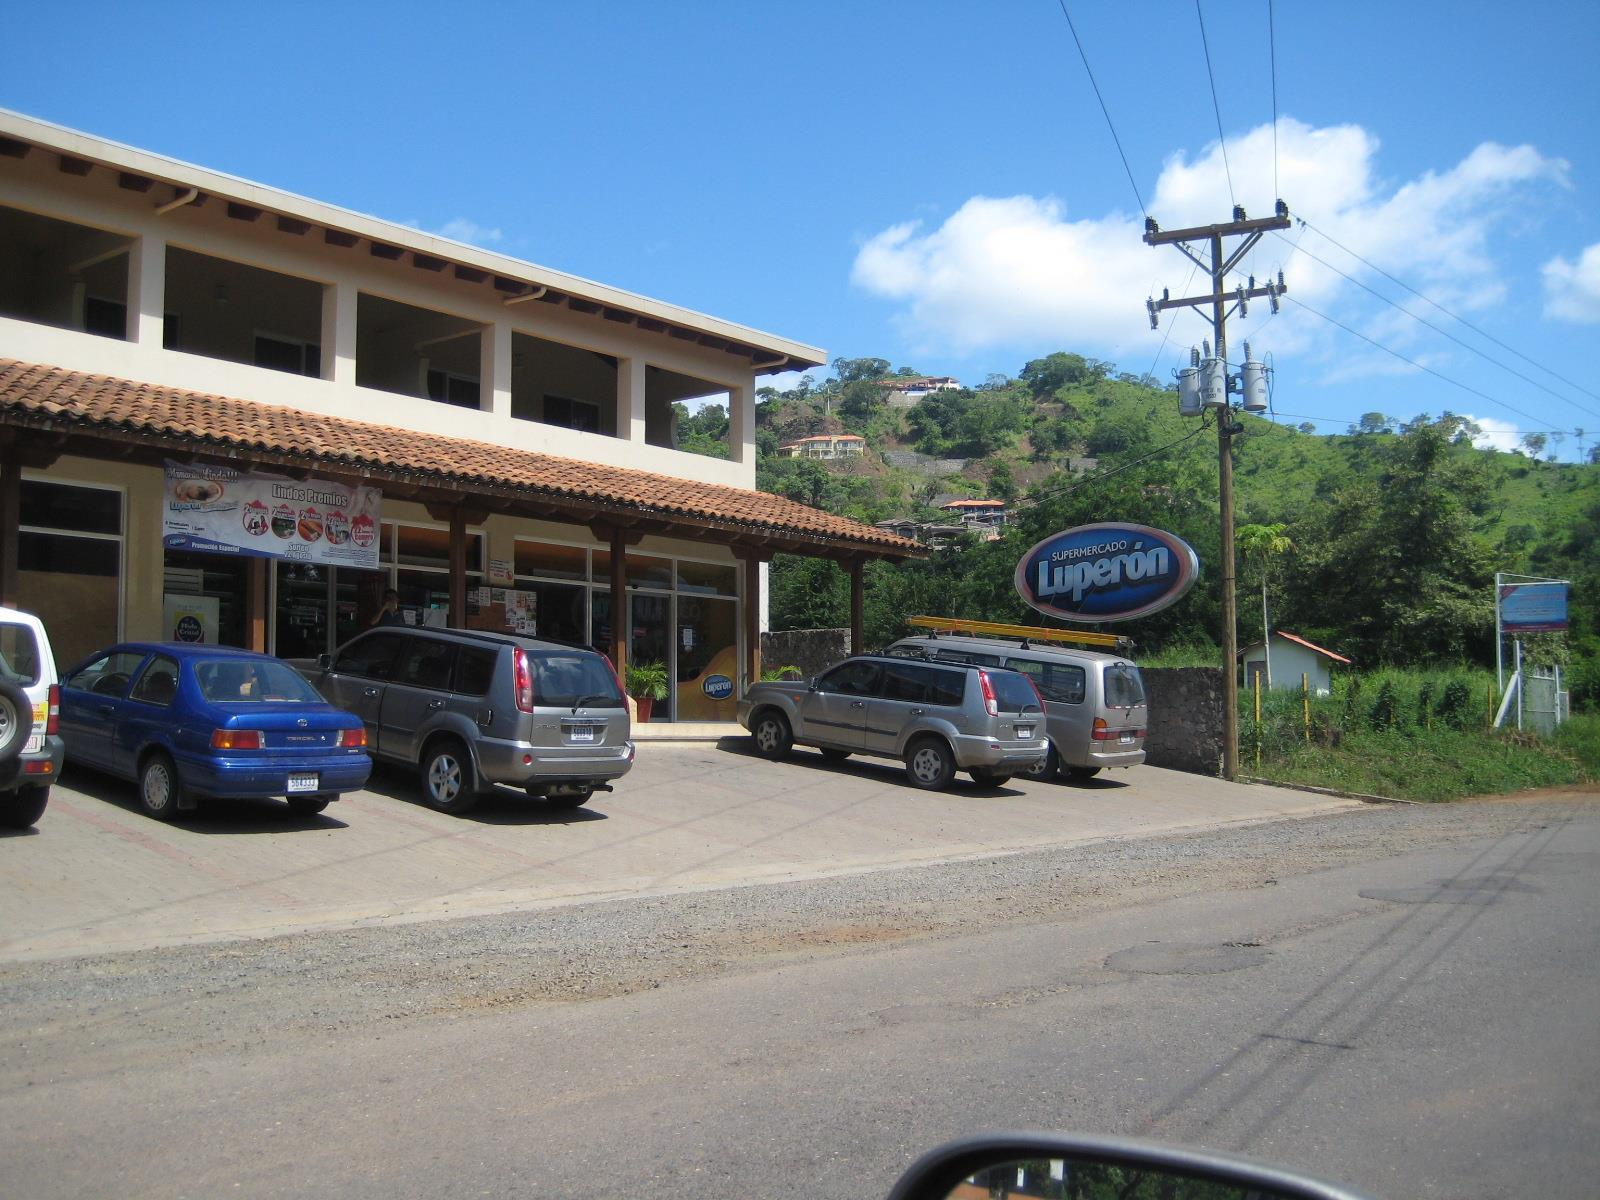 Luperon Supermarket, Playa Hermosa, Costa Rica